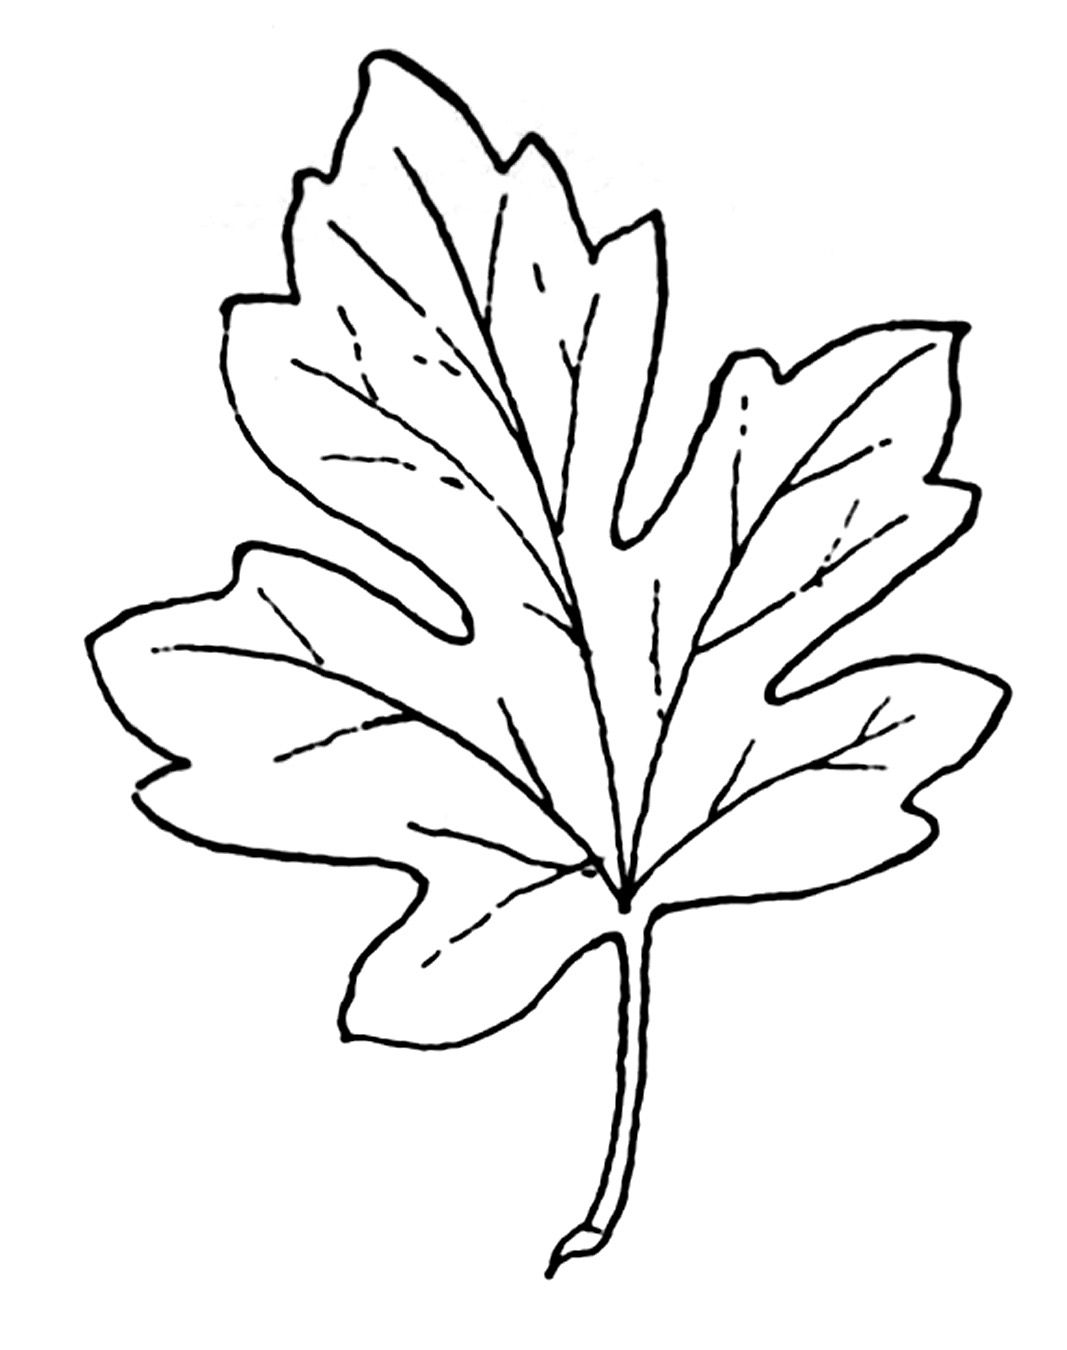 8 Maple Leaf Images Leaf Coloring Page Fall Clip Art Maple